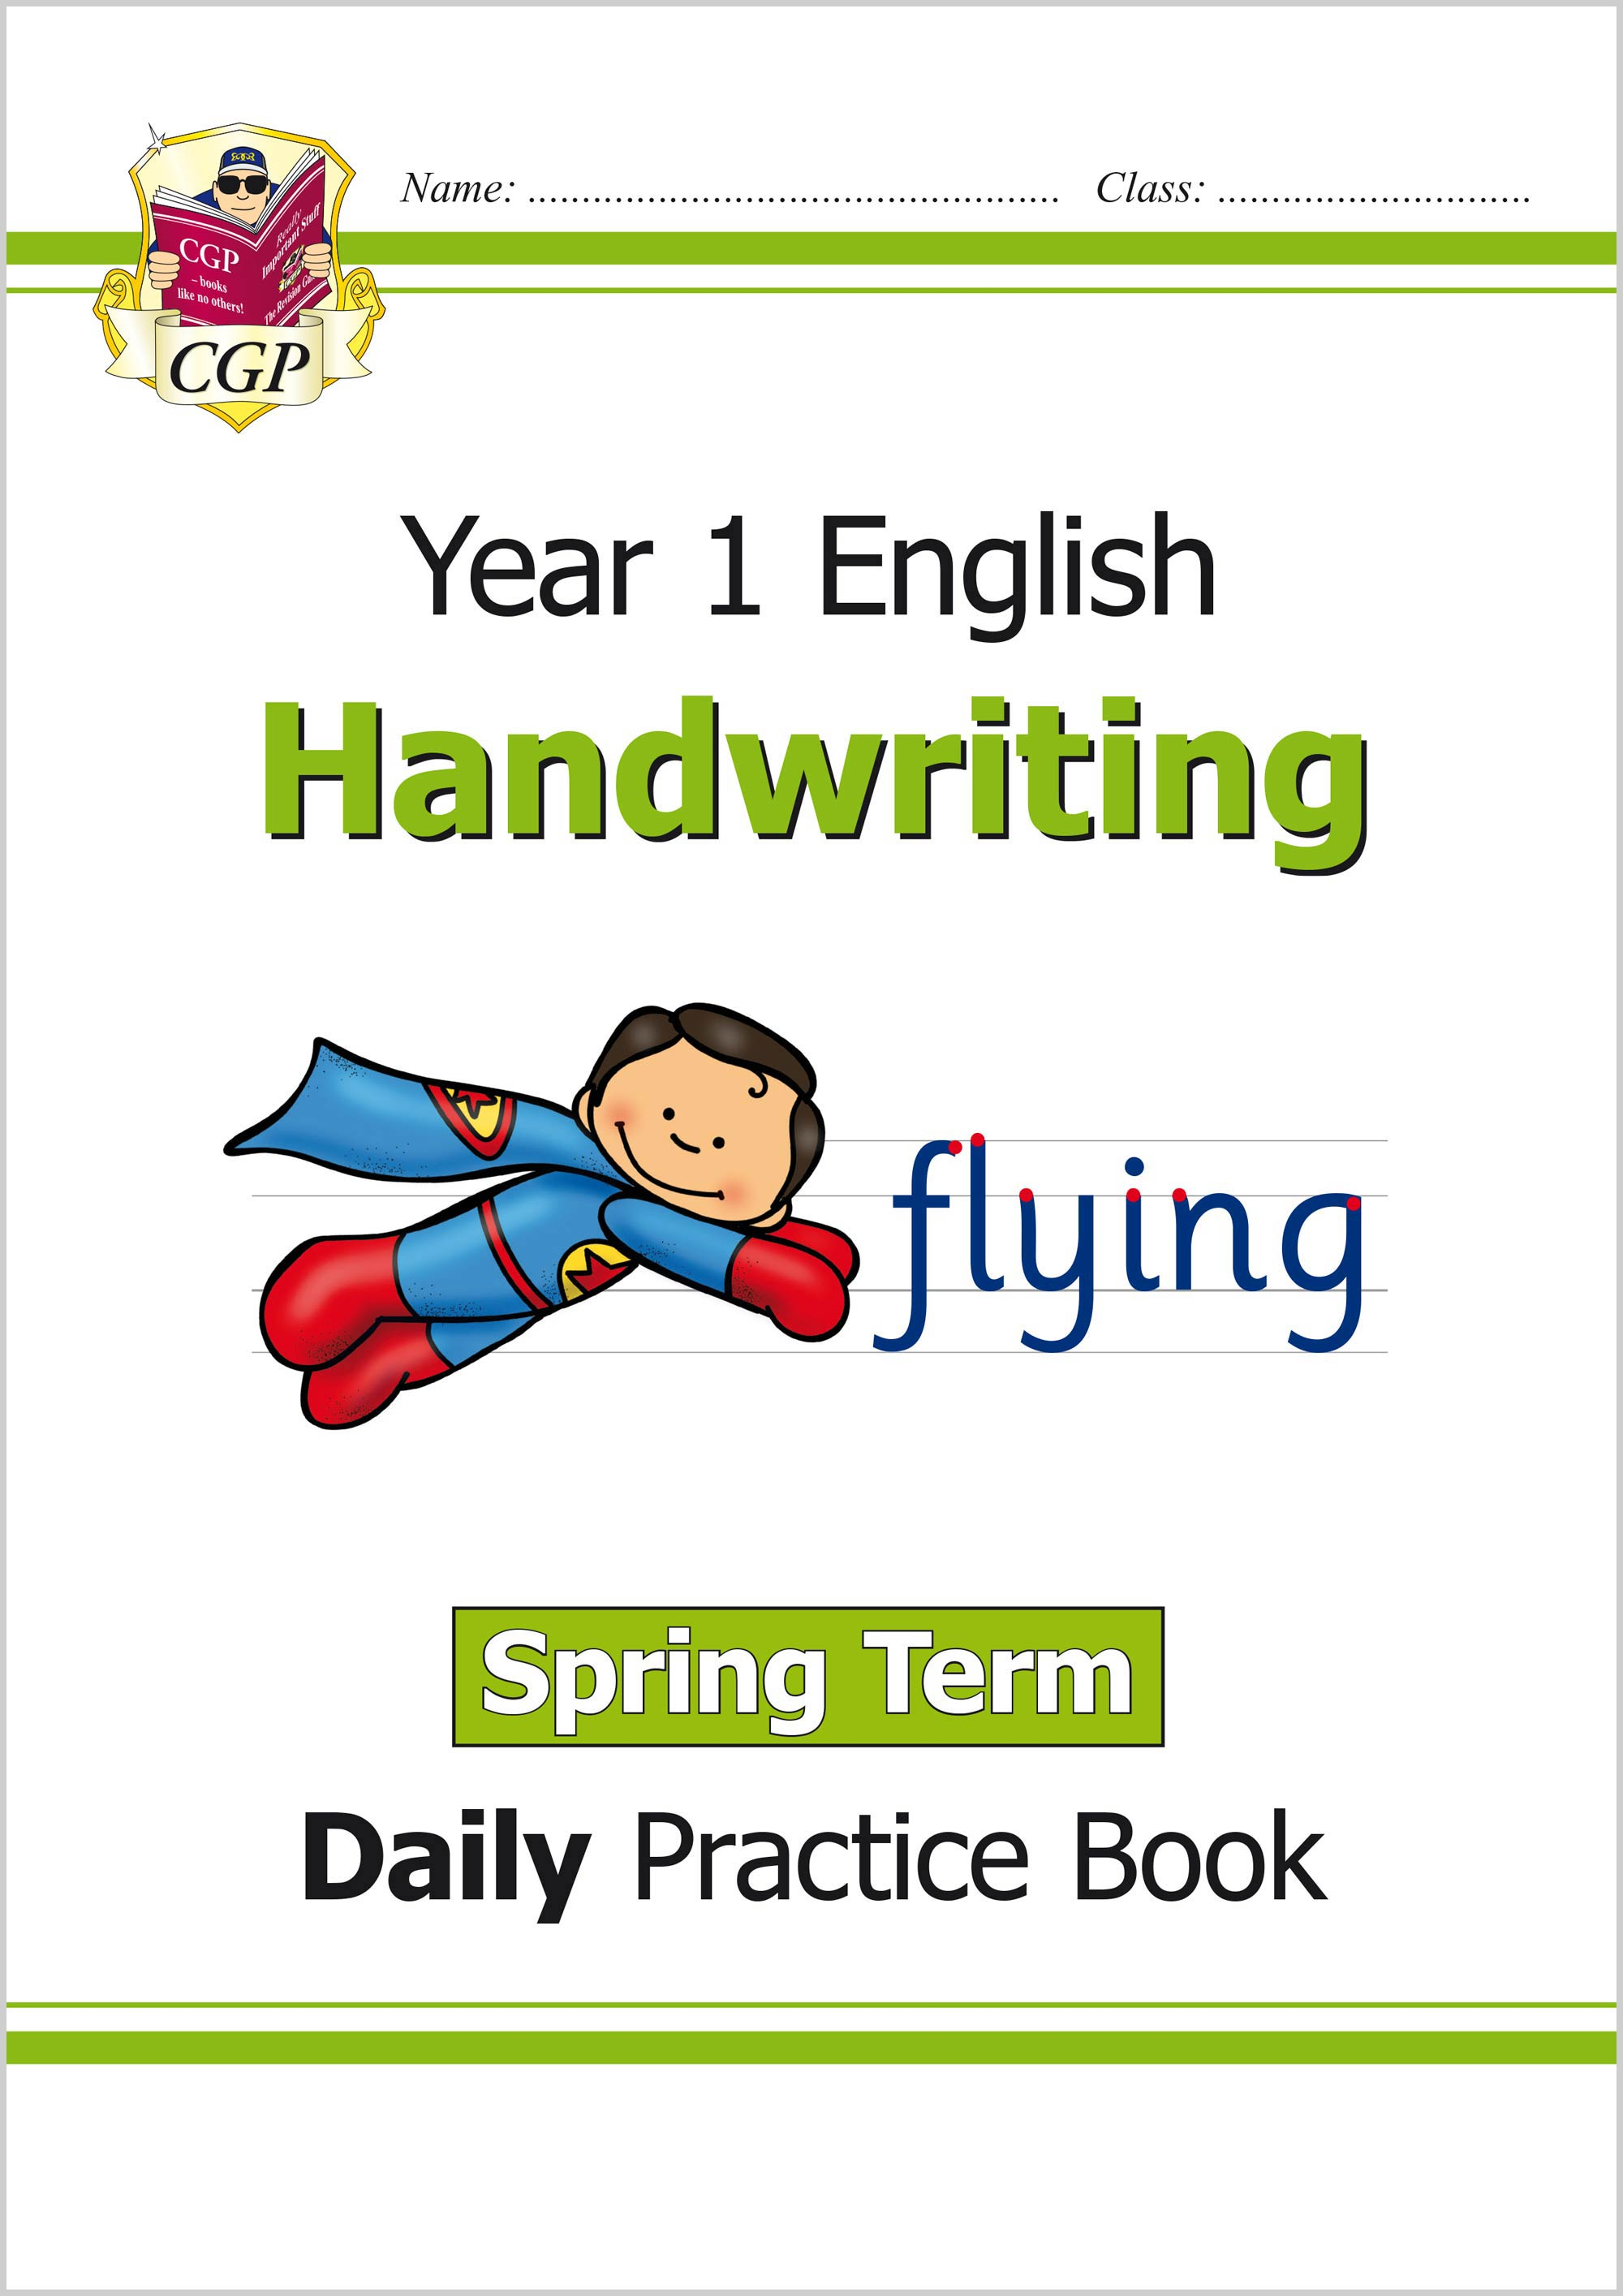 E1HWSP11 - New KS1 Handwriting Daily Practice Book: Year 1 - Spring Term